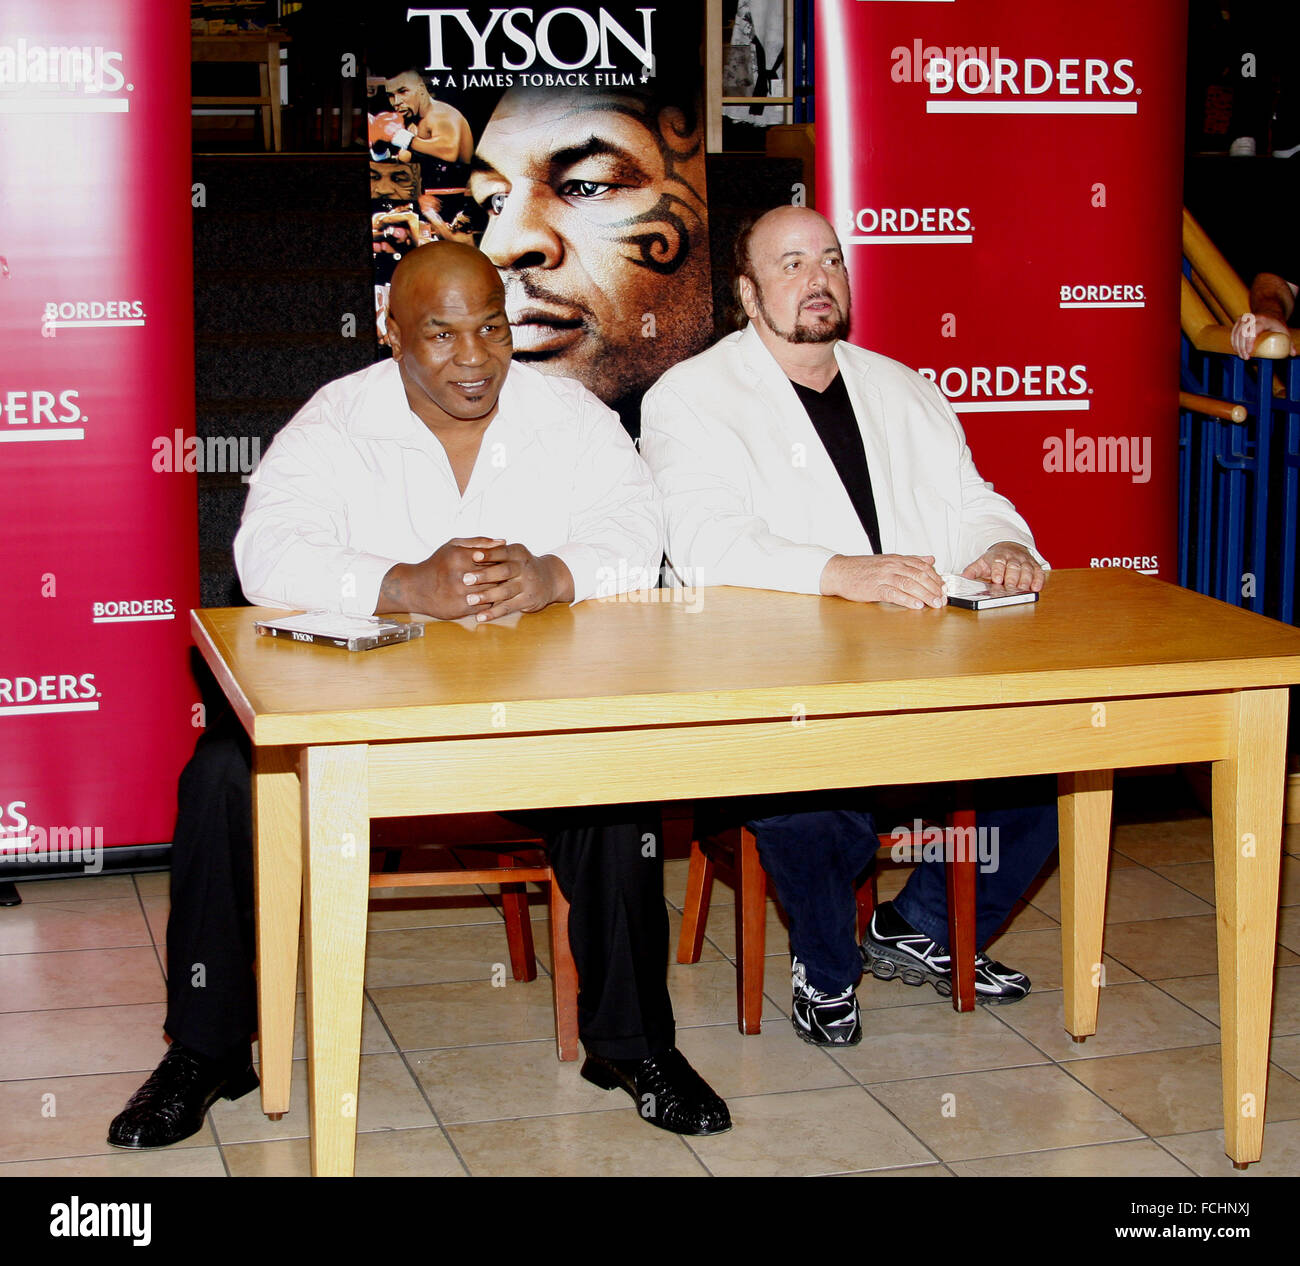 Mike tyson and james toback meet fans and signs copies of the blu mike tyson and james toback meet fans and signs copies of the blu ray and dvd tyson held at the borders in hollywood m4hsunfo